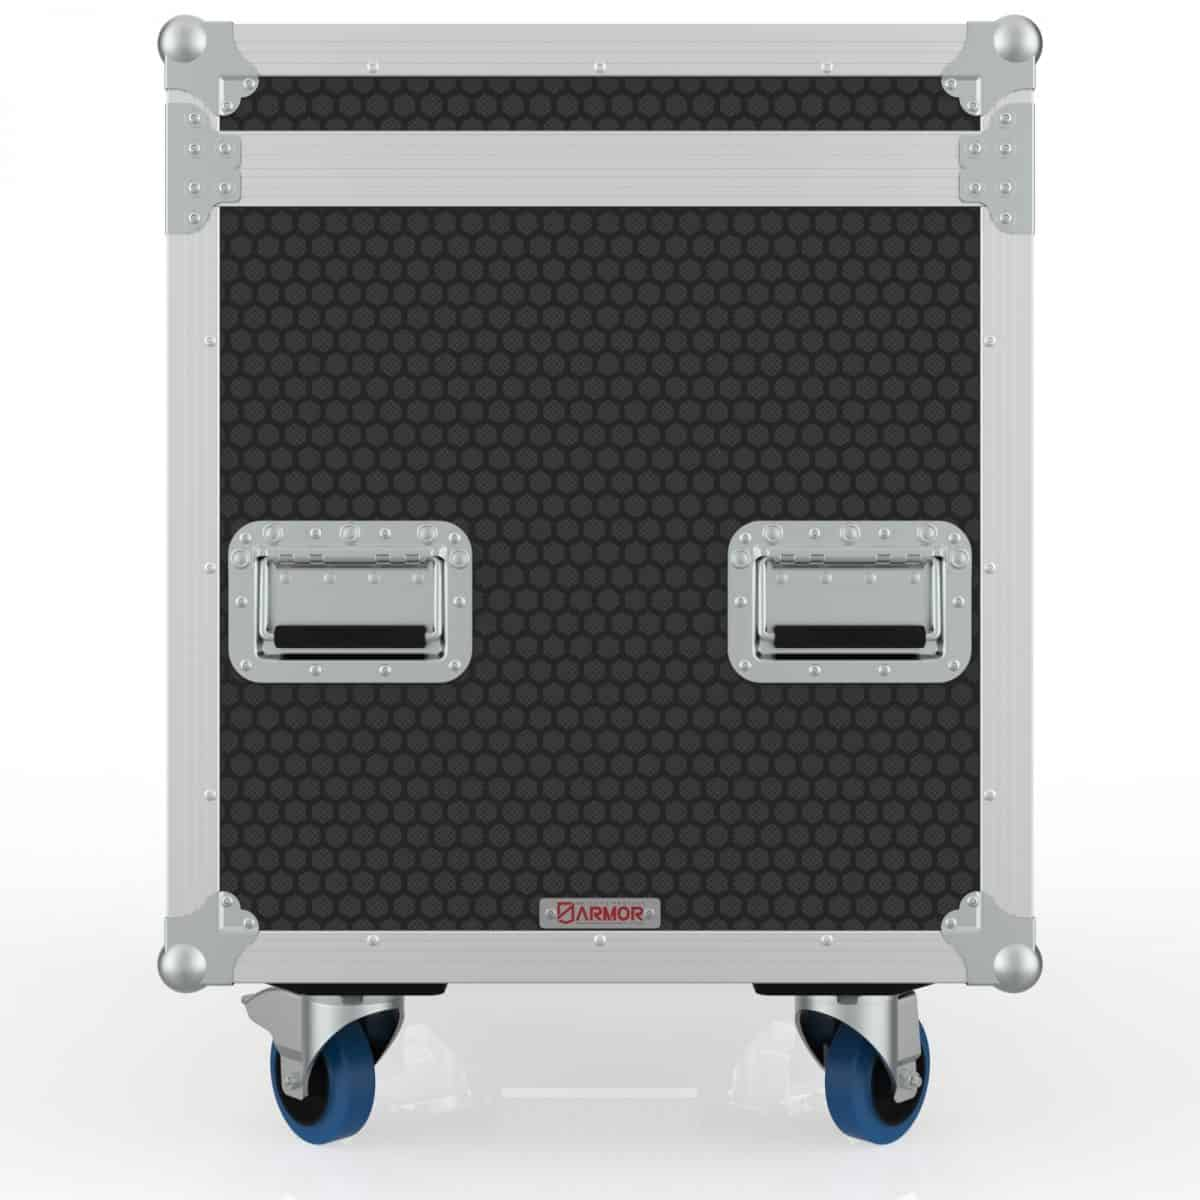 ARMOR CP800 Cable Packer Utility Trunk Road Case